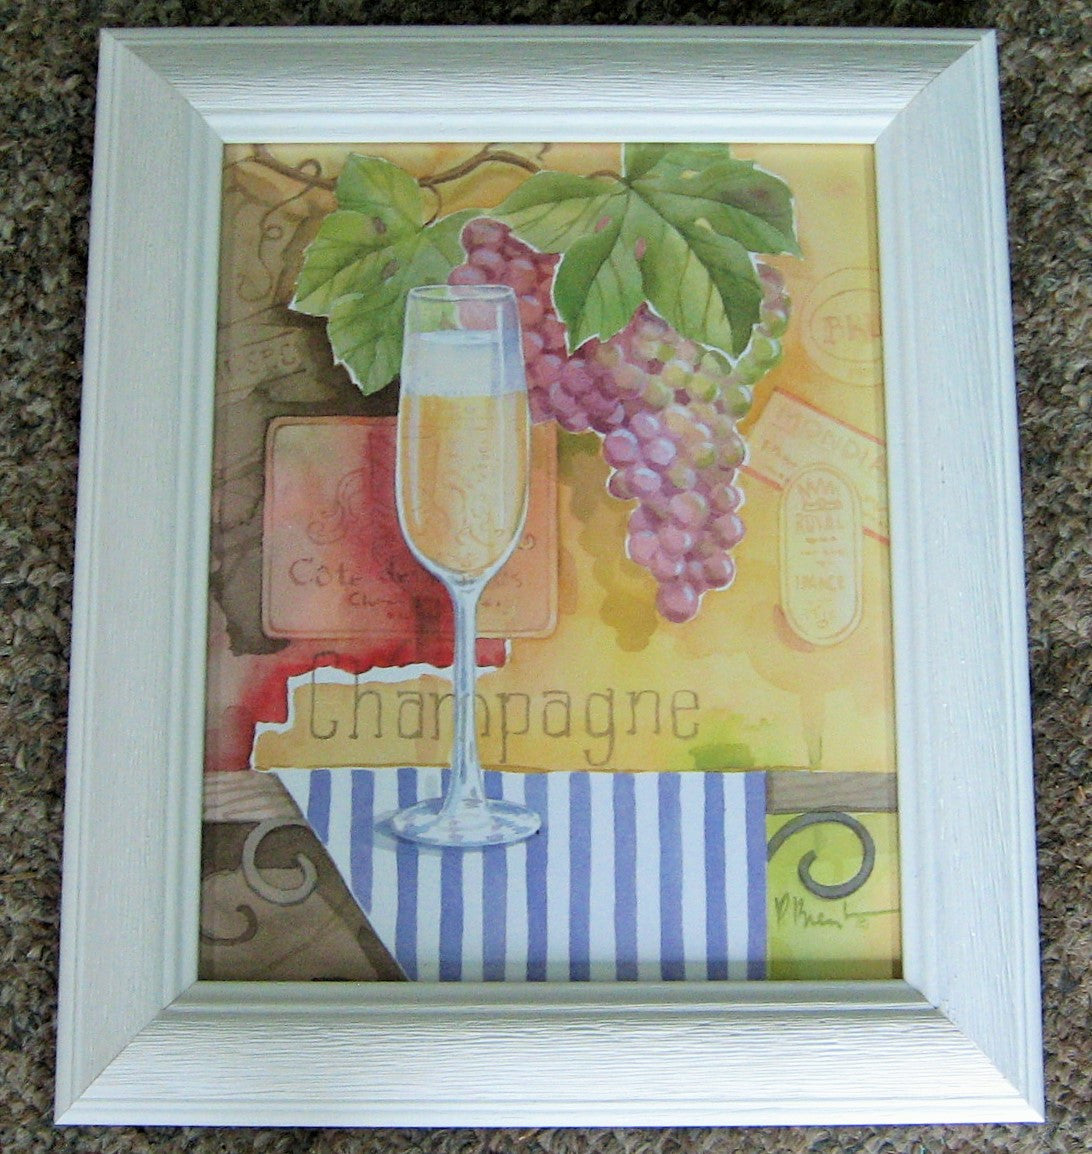 CUSTOM FRAMED WINE ART, ARTIST PAUL BRENT, WHITE DRIFTWOOD FRAME, CHAMPAGNE